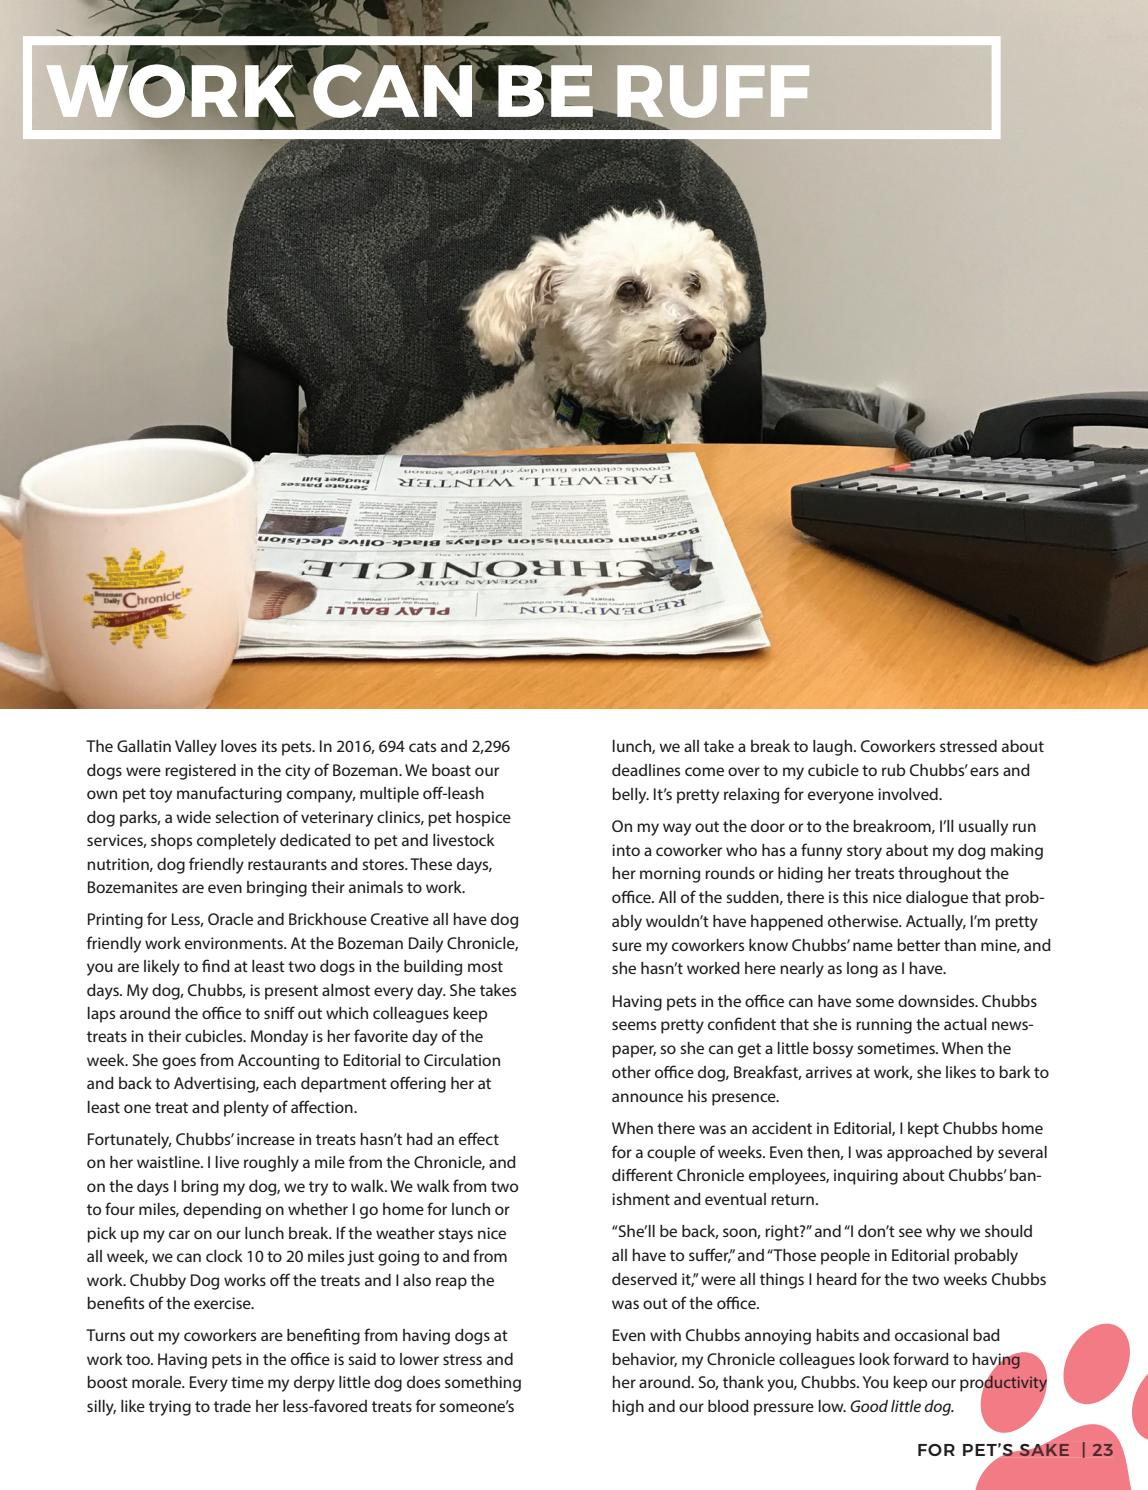 For Pet's Sake | 2017 by Bozeman Daily Chronicle - issuu